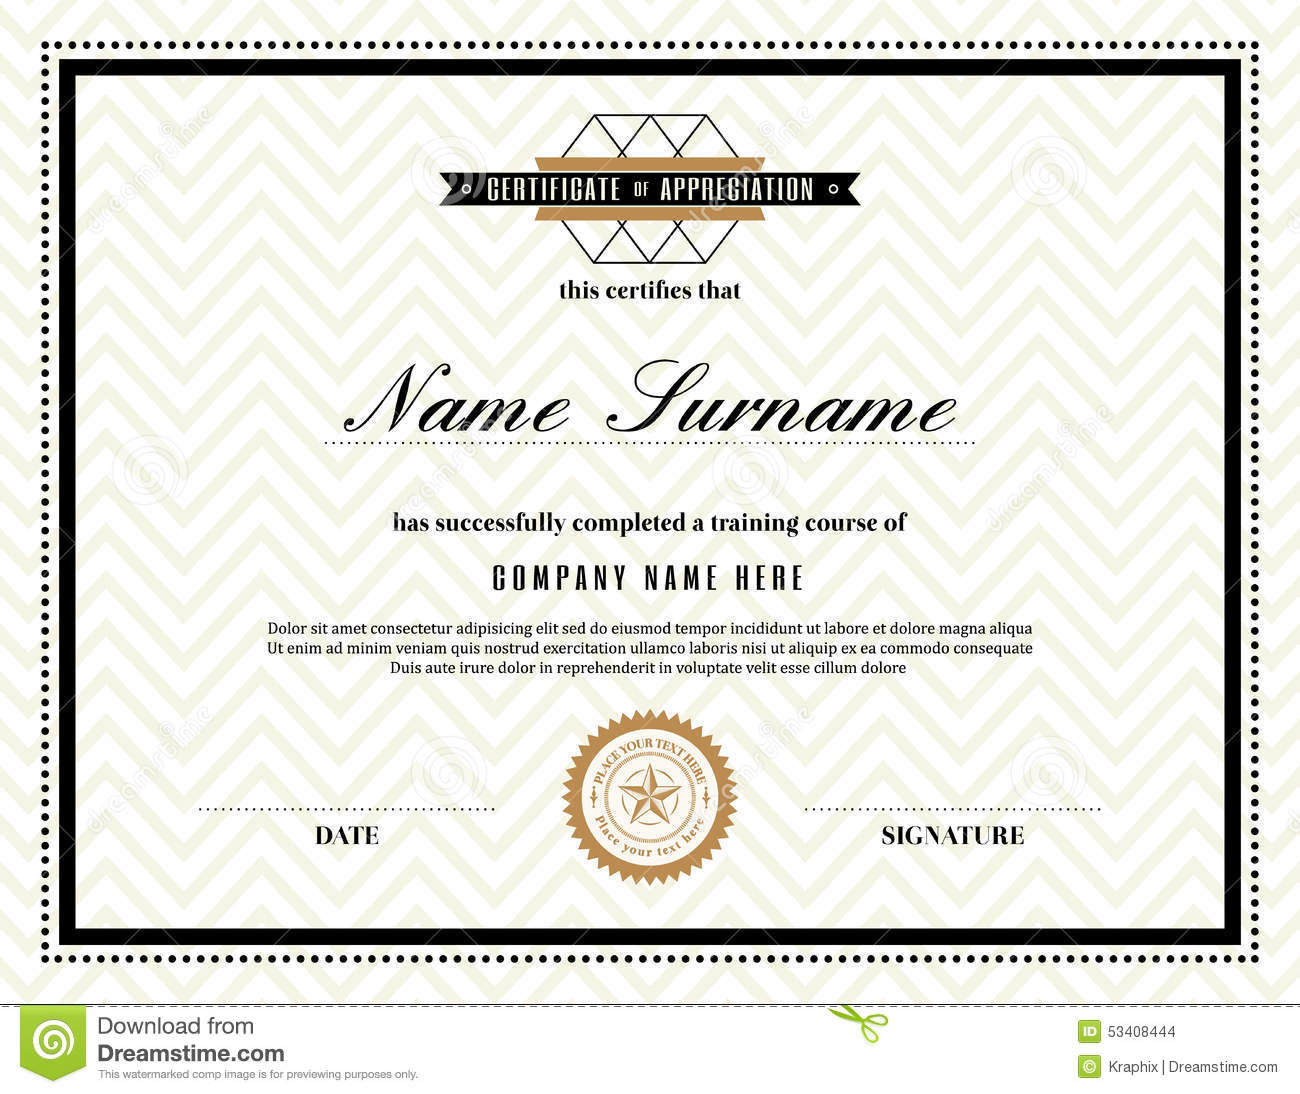 Retro frame certificate of appreciation template stock vector retro frame certificate of appreciation template royalty free vector yelopaper Images